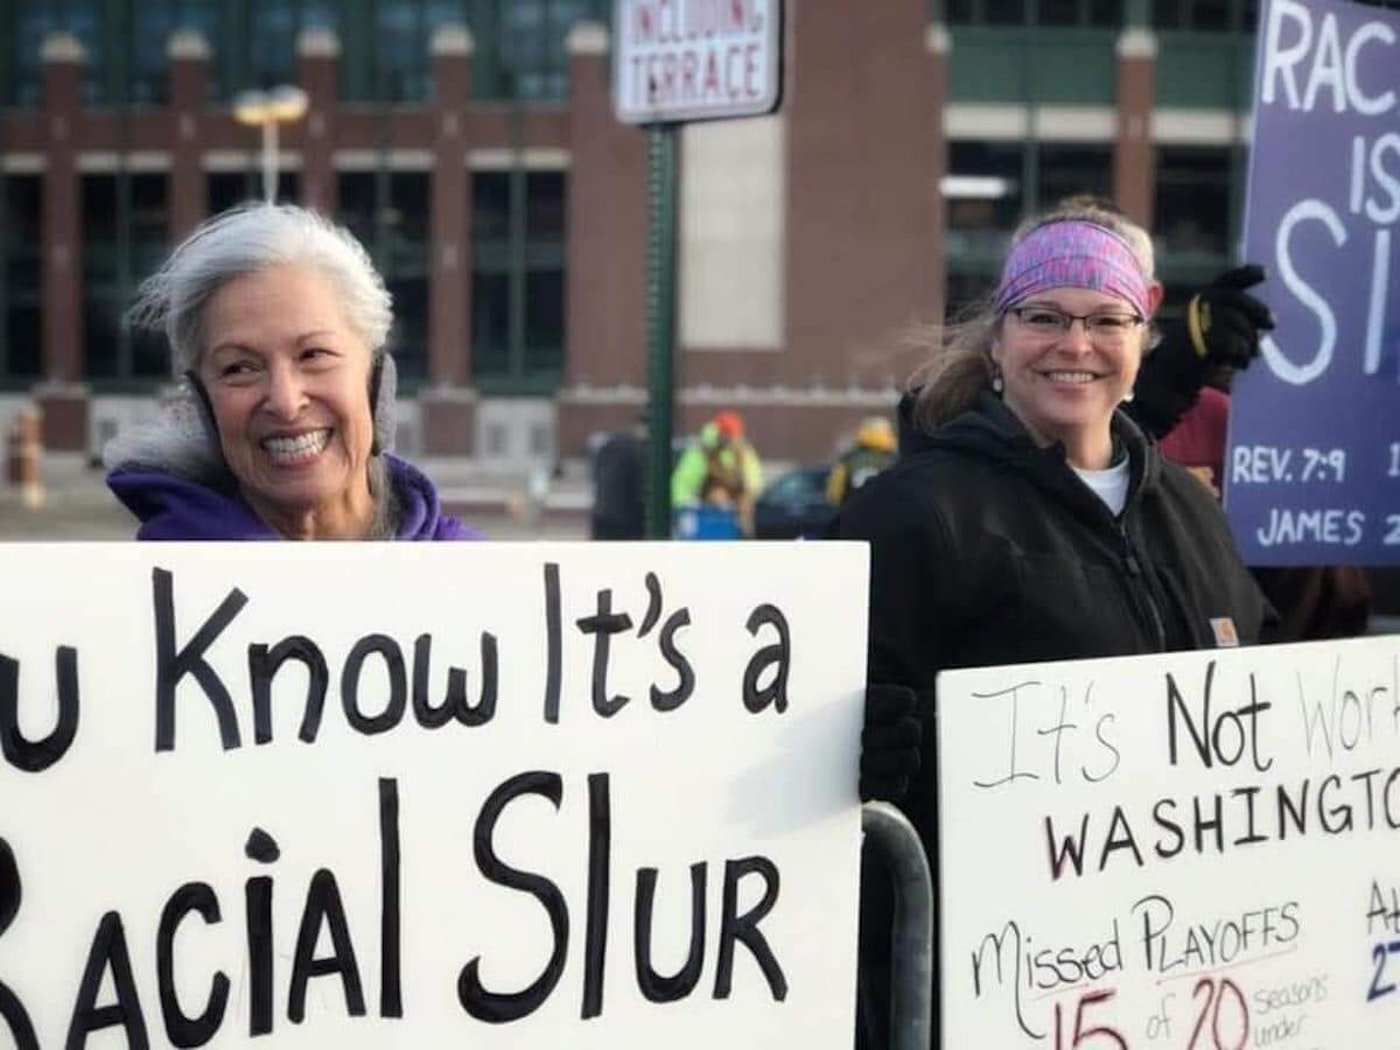 Barb Munson (left) holds a sign outside Lambeau Field denouncing the Washington Football Team's name prior to a decision earlier this year by the team to change it.  (Photo provided by Barb Munson)